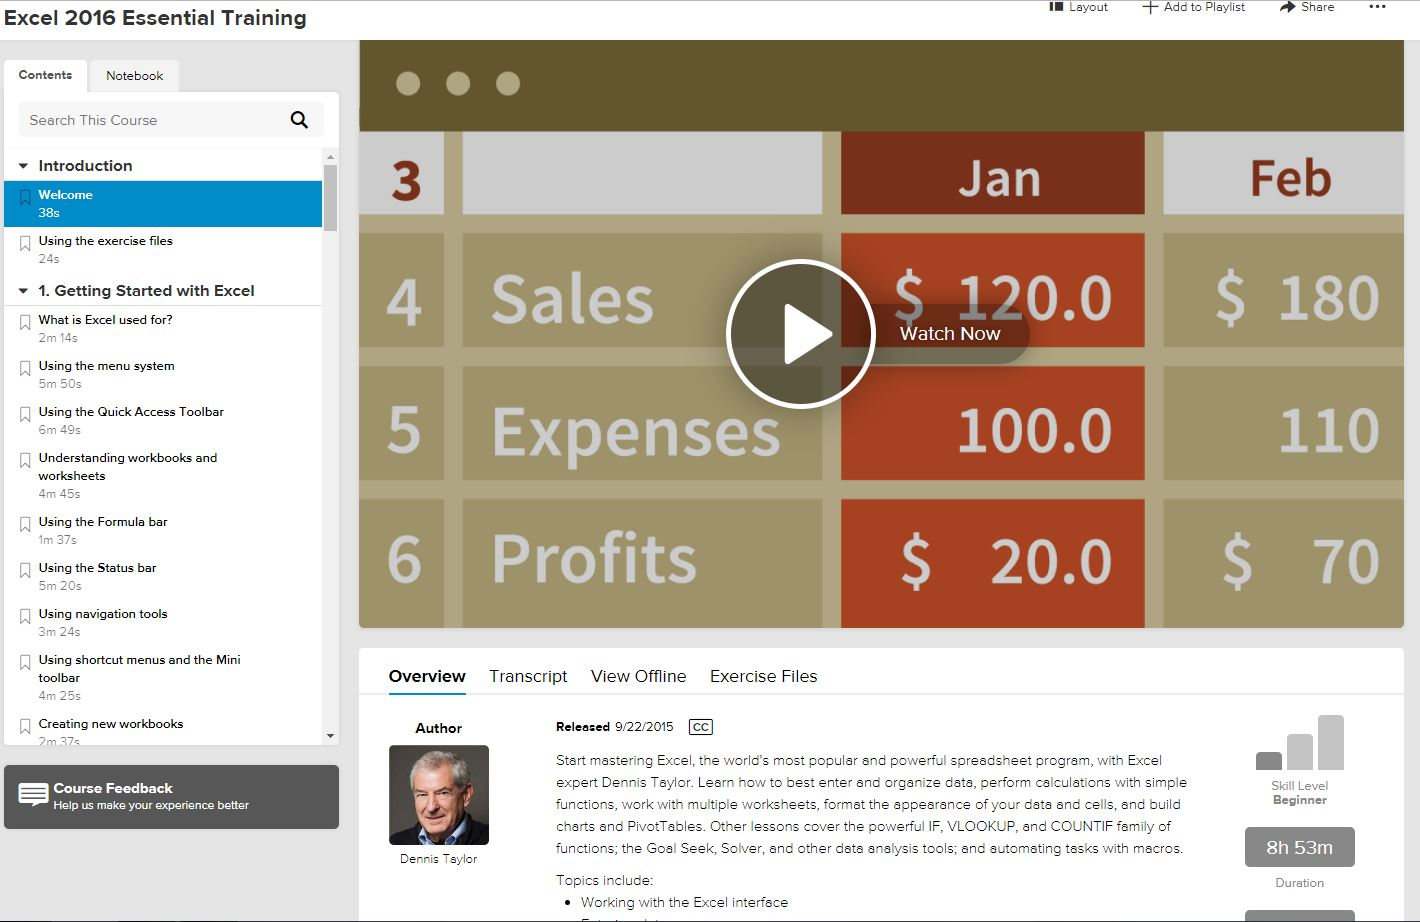 Excel 2016 course page on Lynda.com